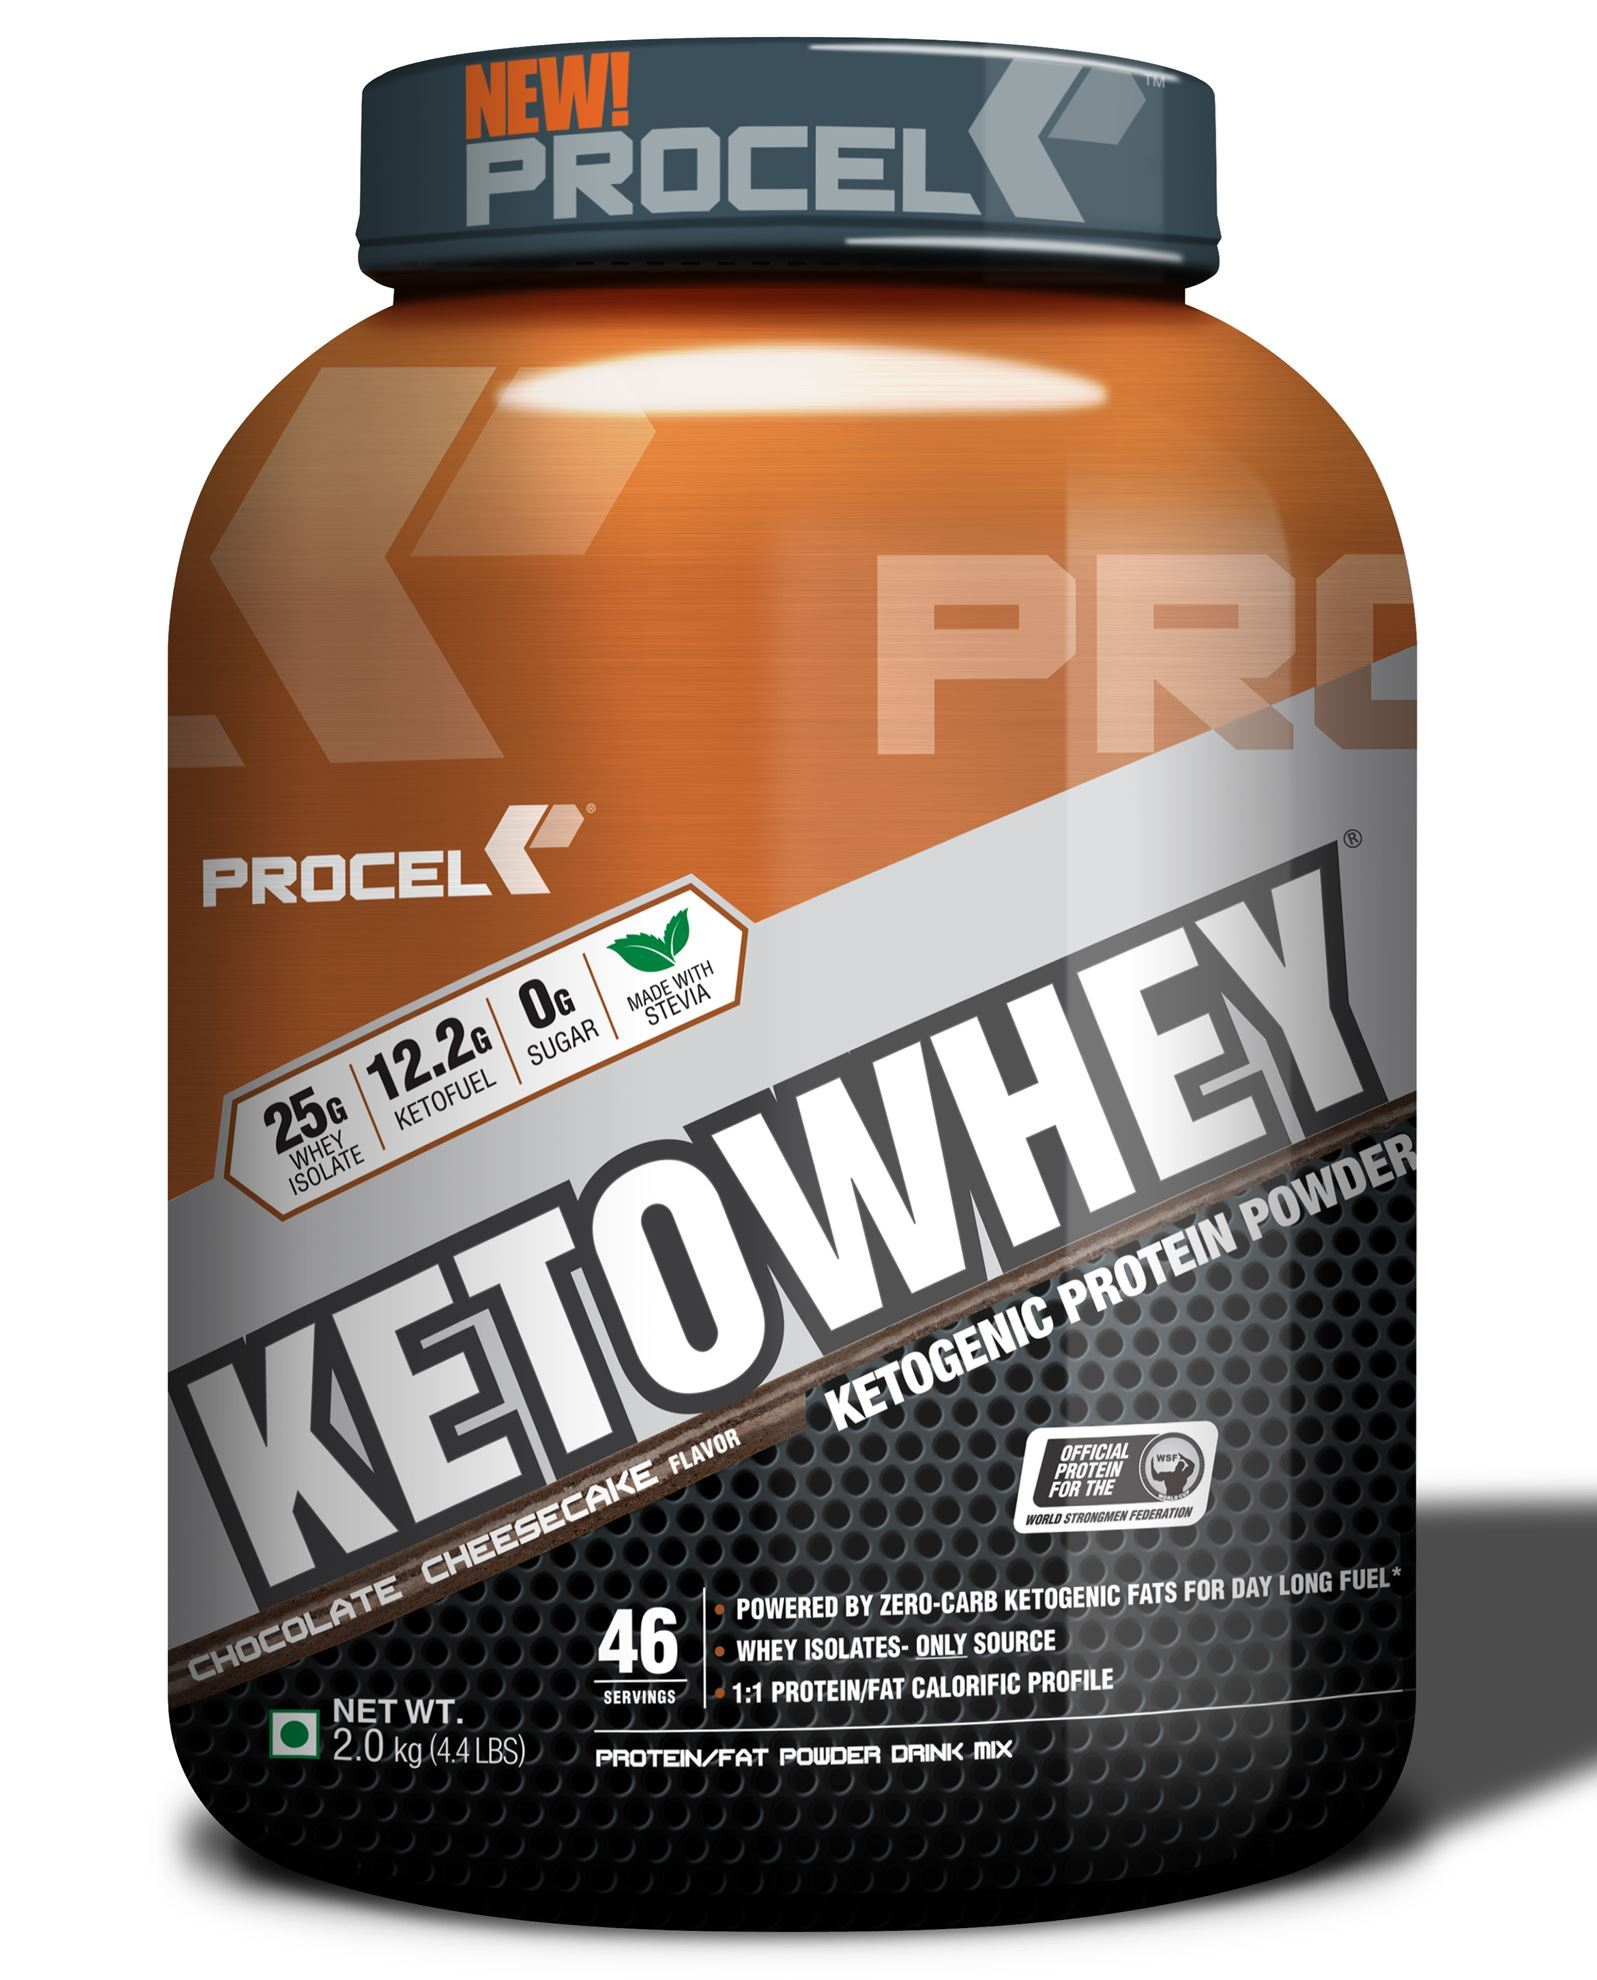 Picture of PROCEL KETOWHEY® Ketogenic Protein Powder with Ketofuel® 2kg Chocolate Cheesecake - Buy one Get One Free